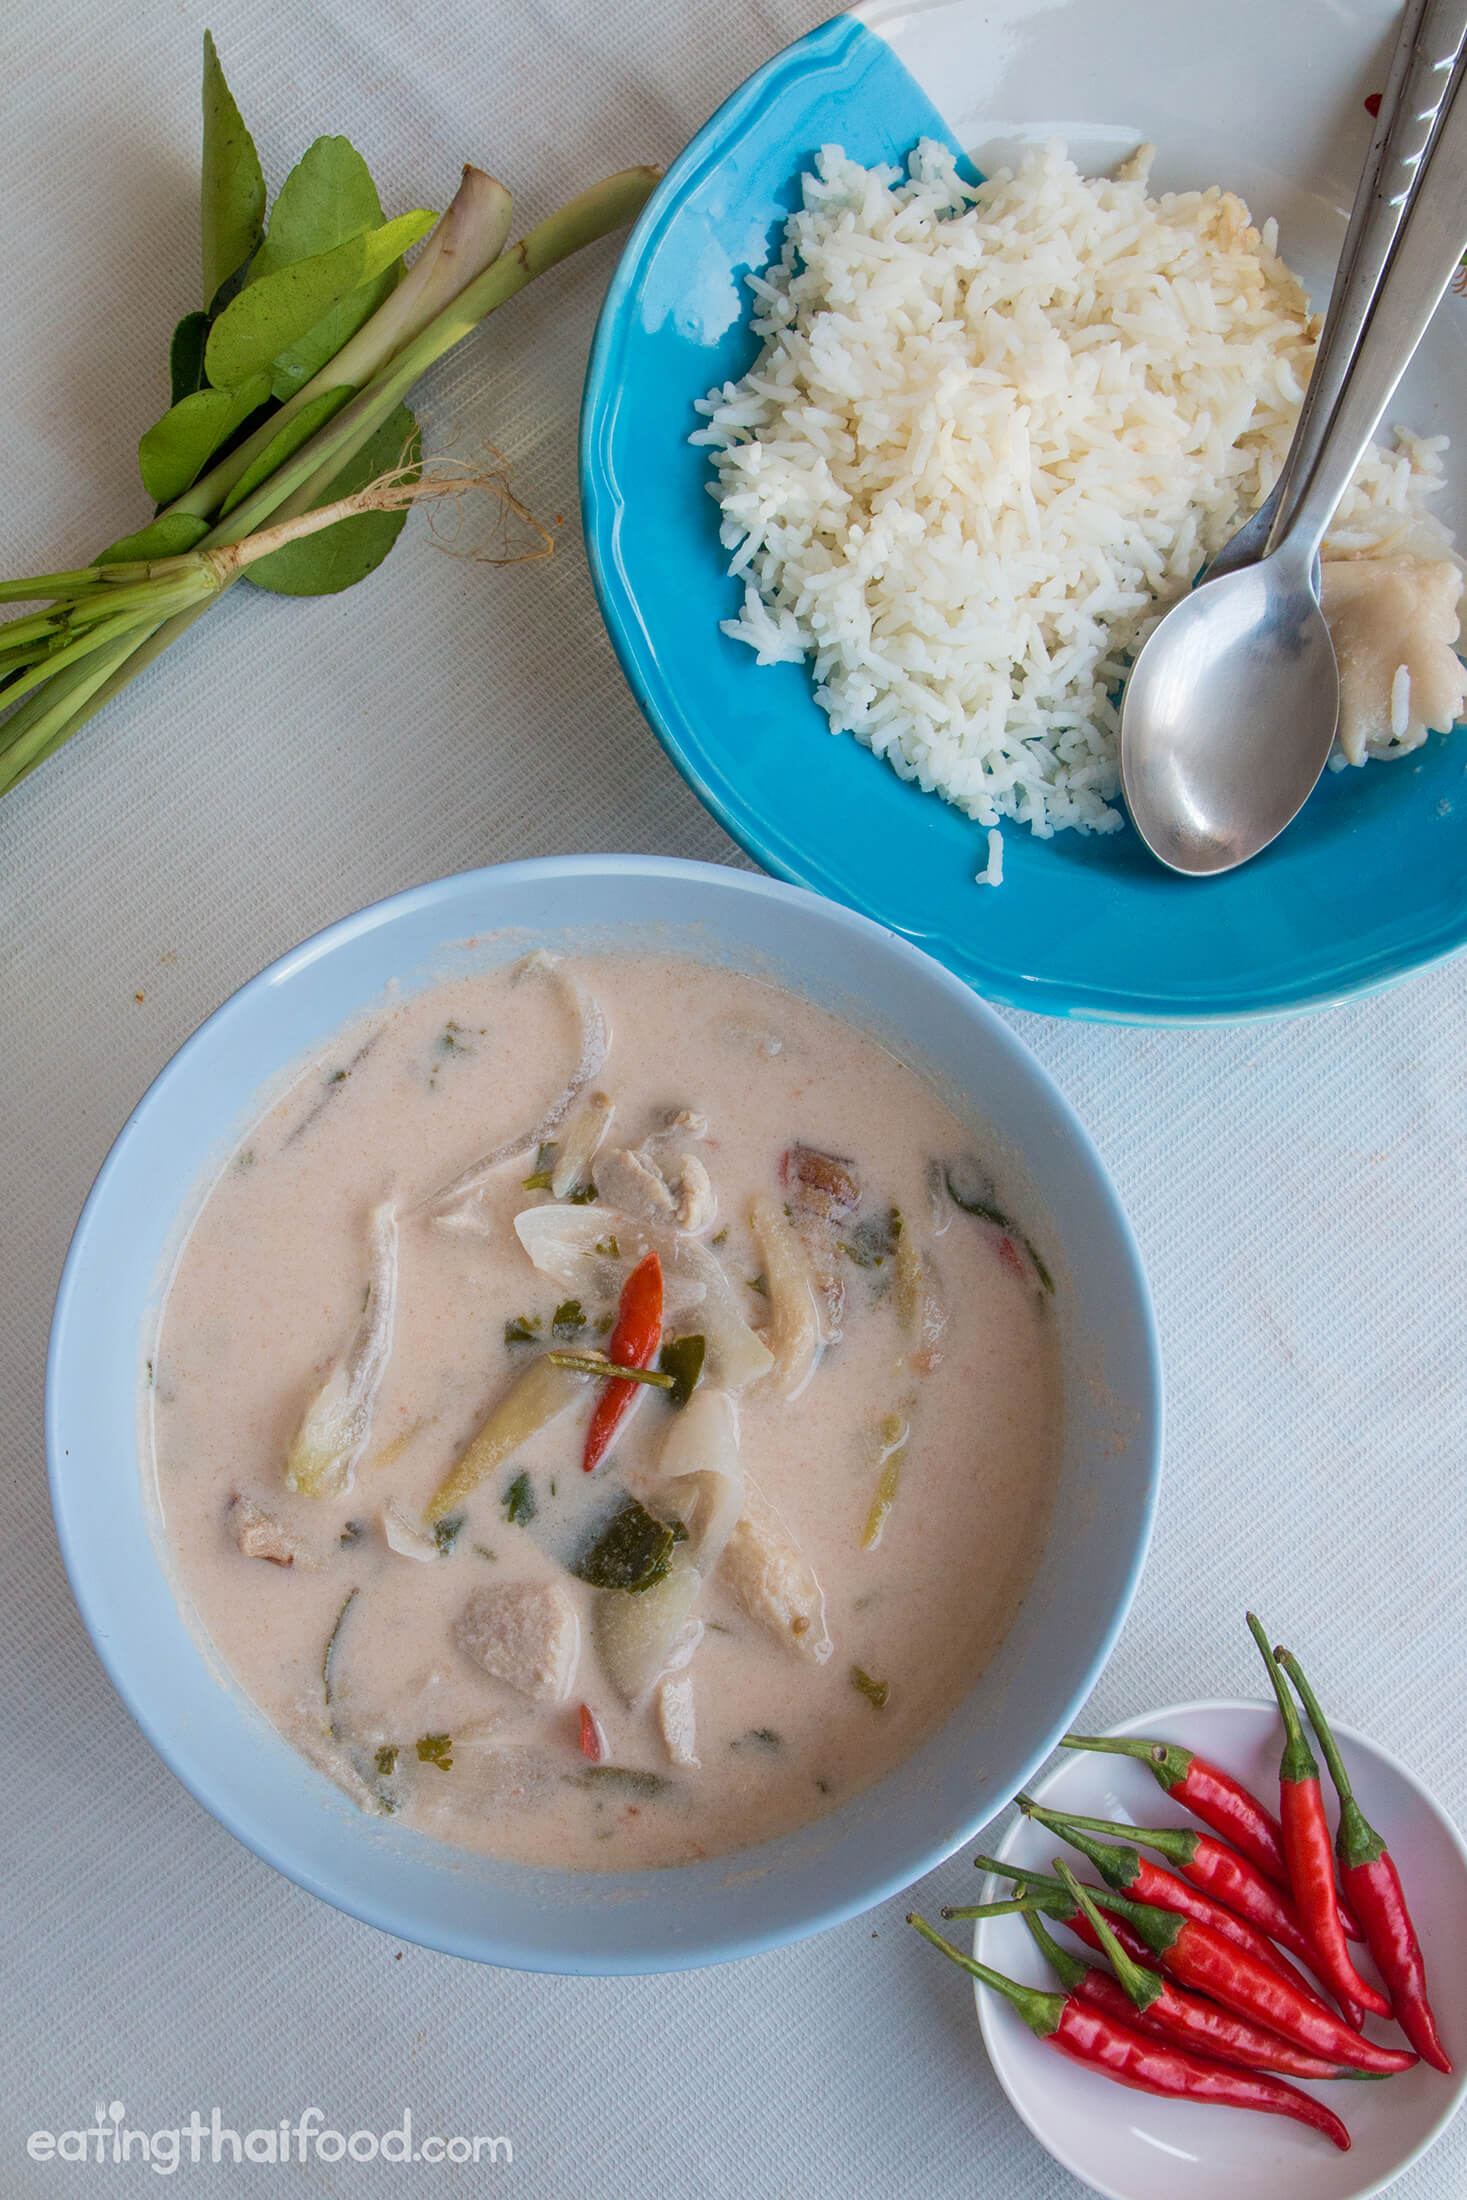 Eat your tom kha gai with fresh steamed rice